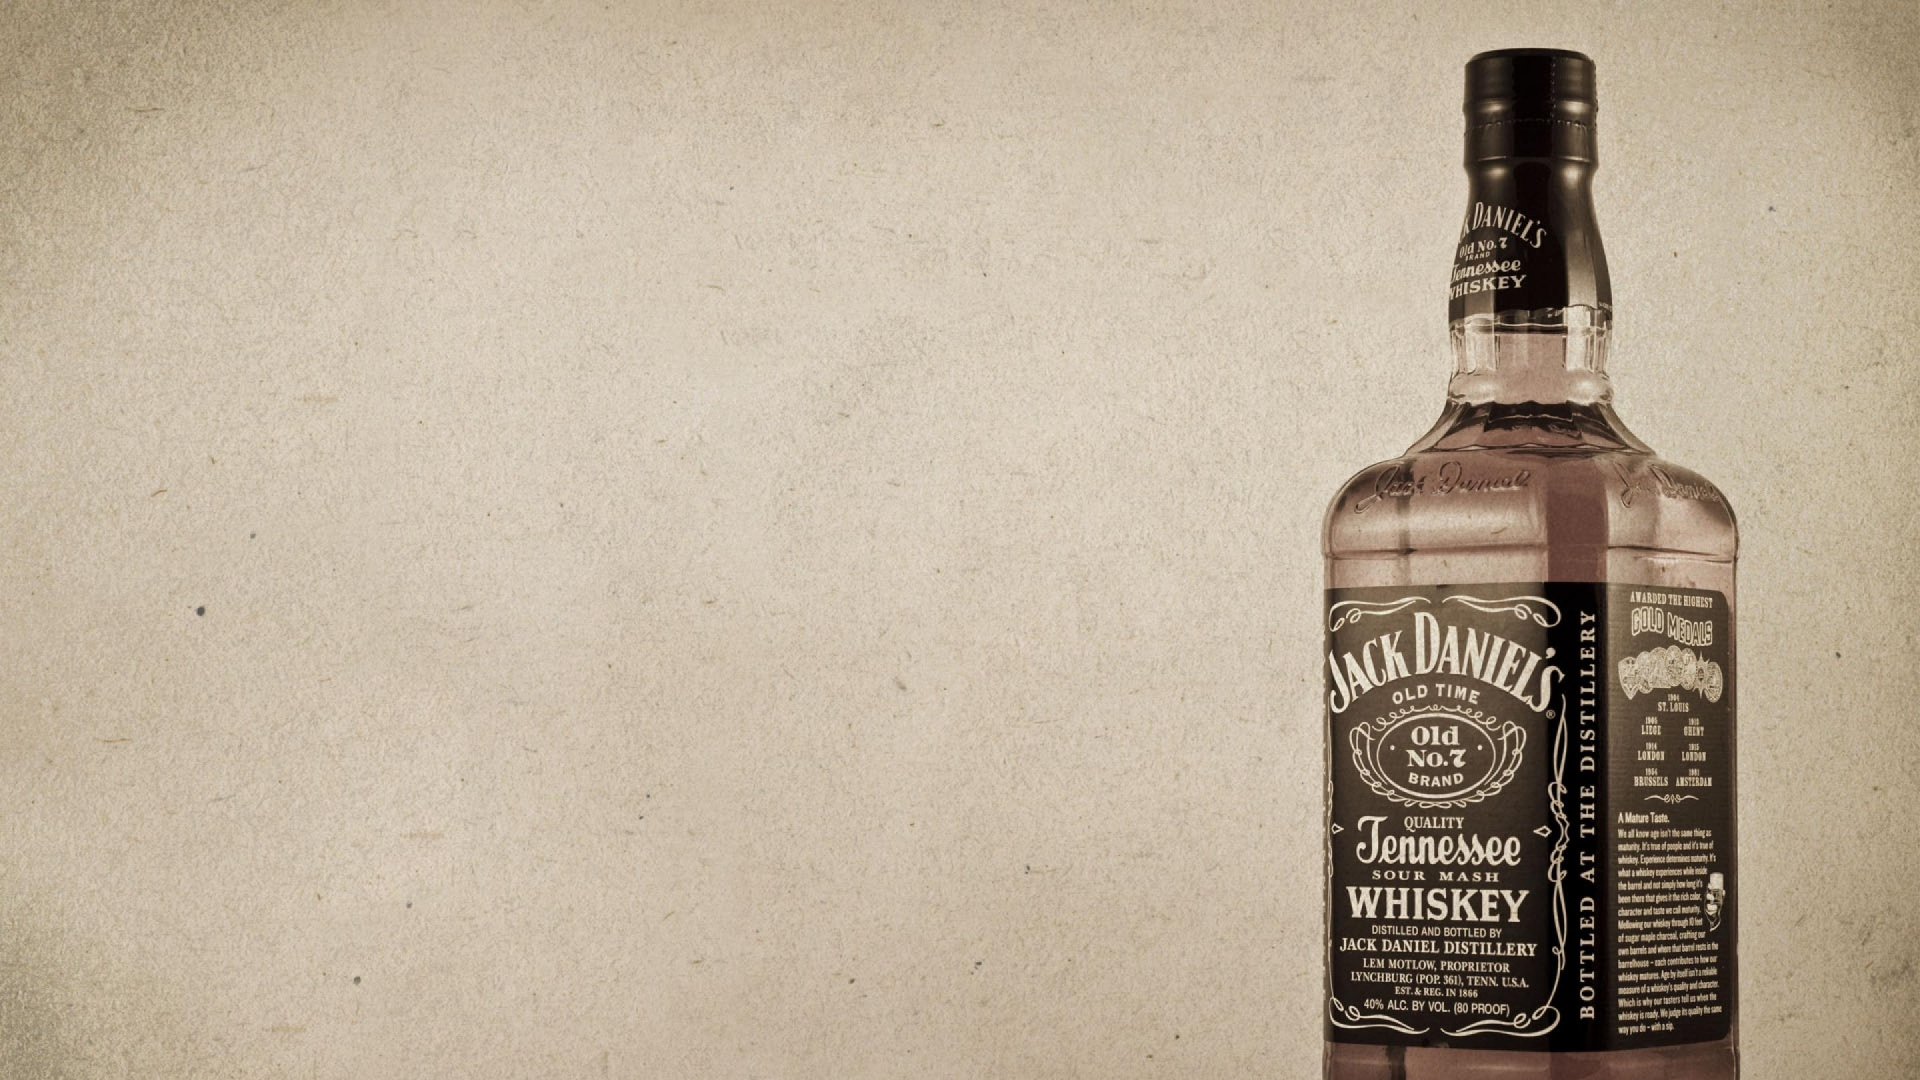 Download wallpaper 1920x1080 whiskey jack daniels bottle whiskey jack daniels bottle voltagebd Gallery